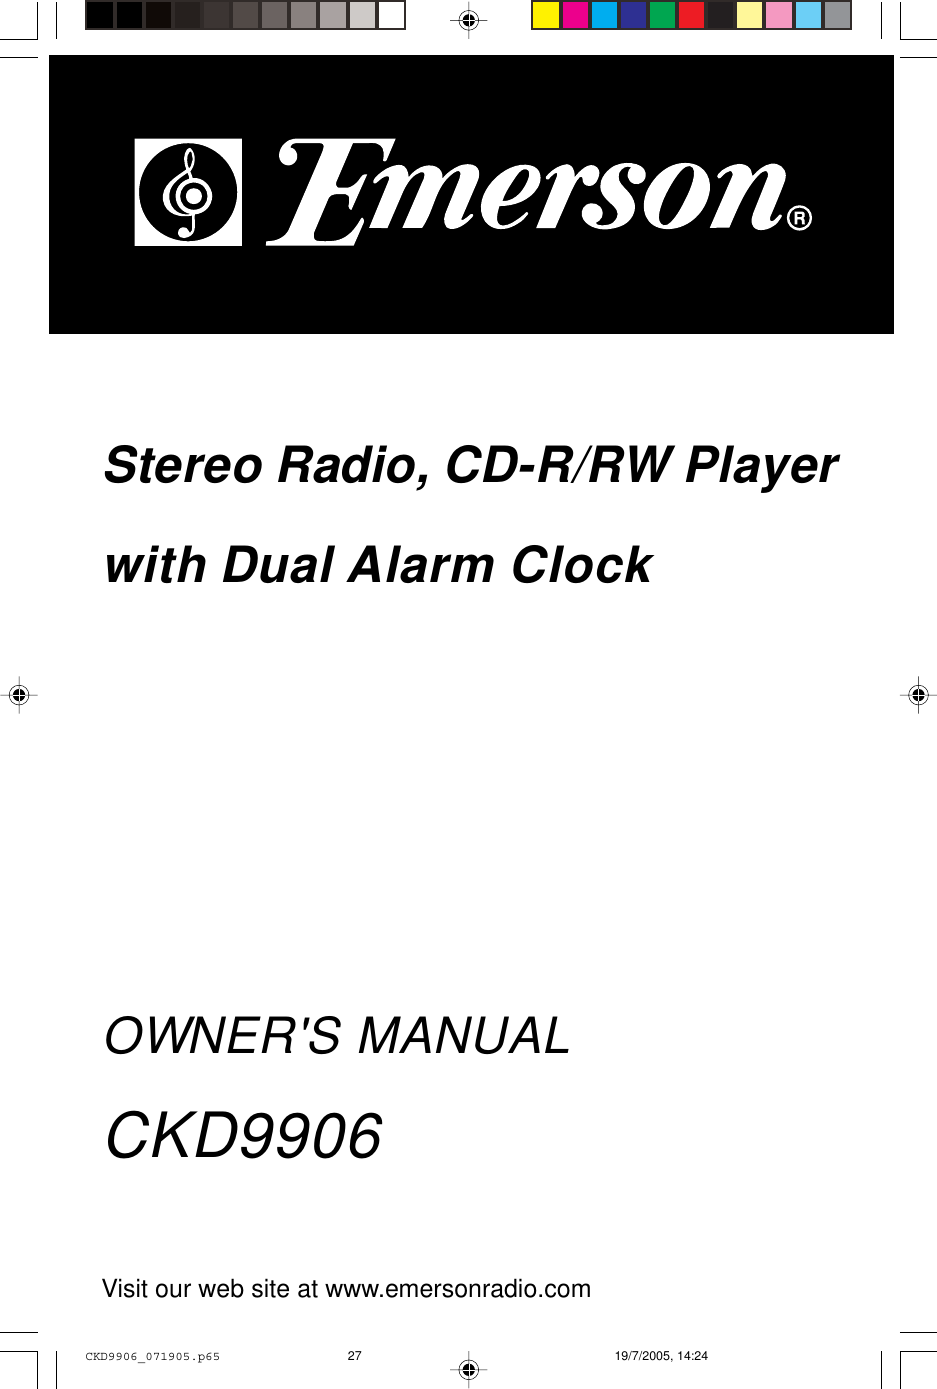 emerson ckd9906 owners manual